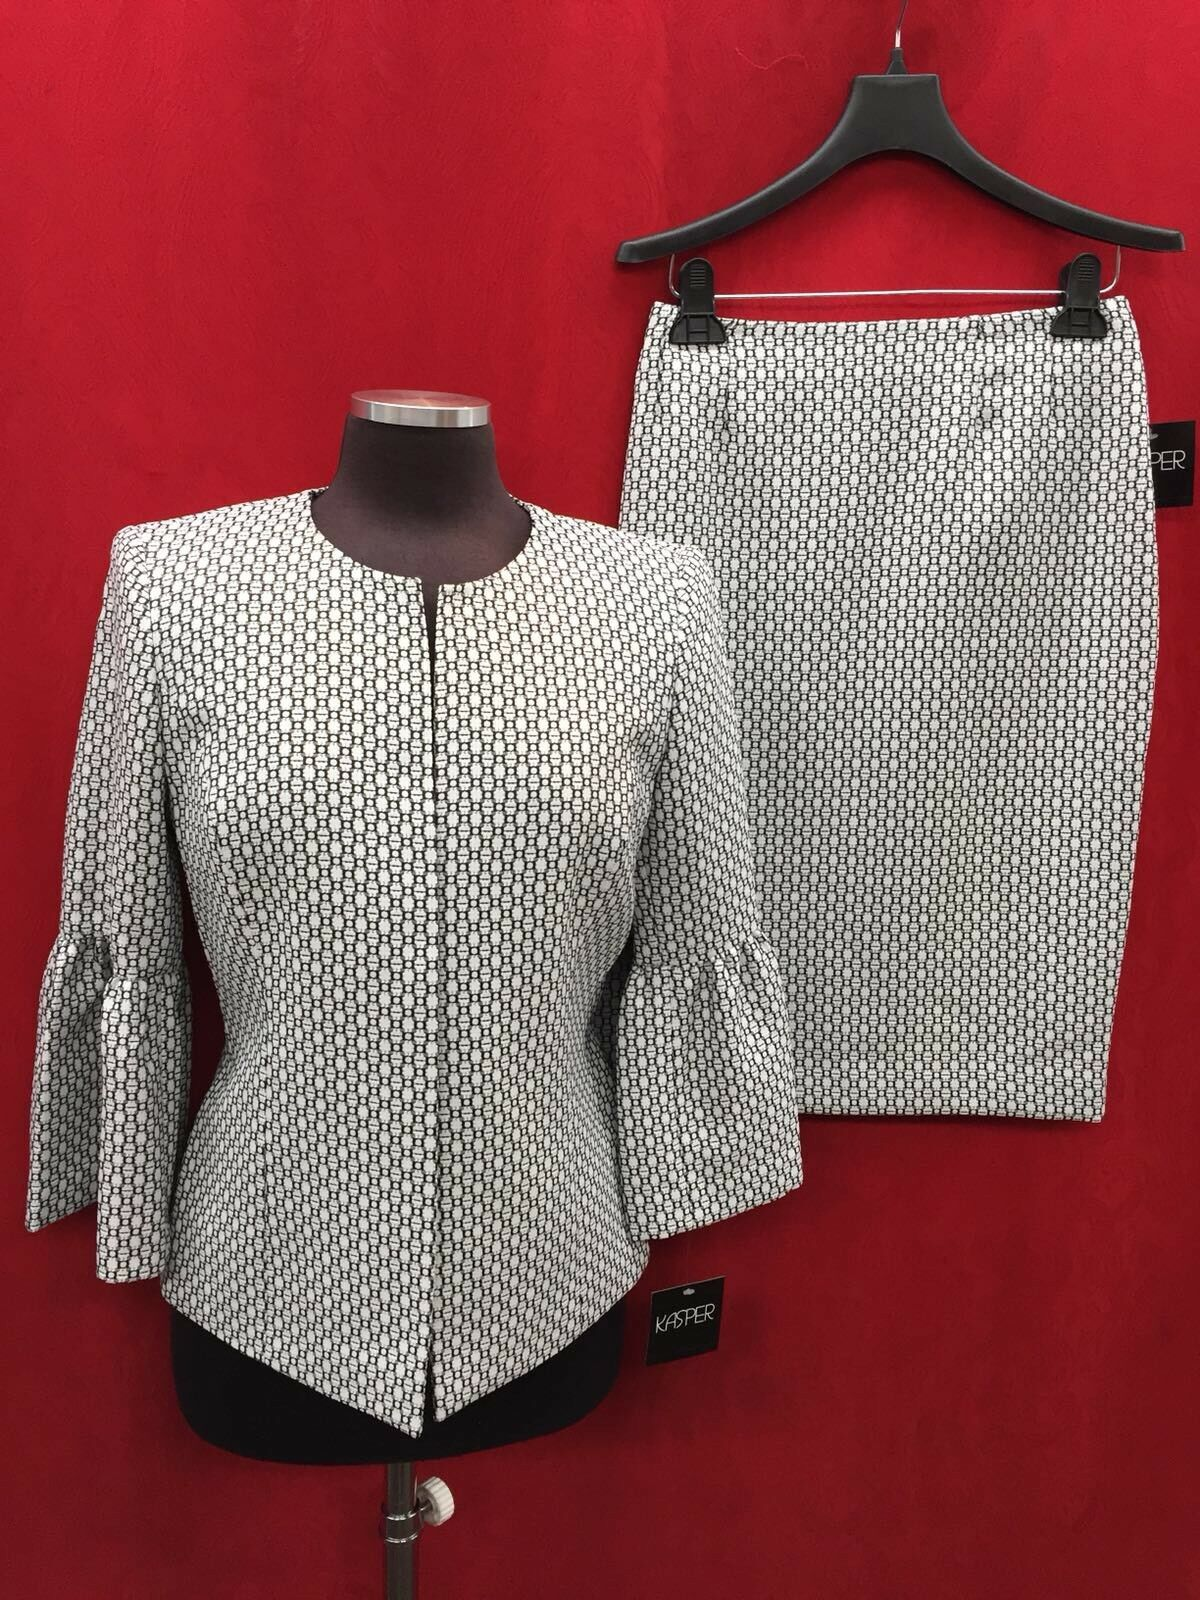 KASPER SKIRT SUIT LINED RETAIL 240 SKIRT LENGTH 24  SIZE 14 NEW WITH TAG